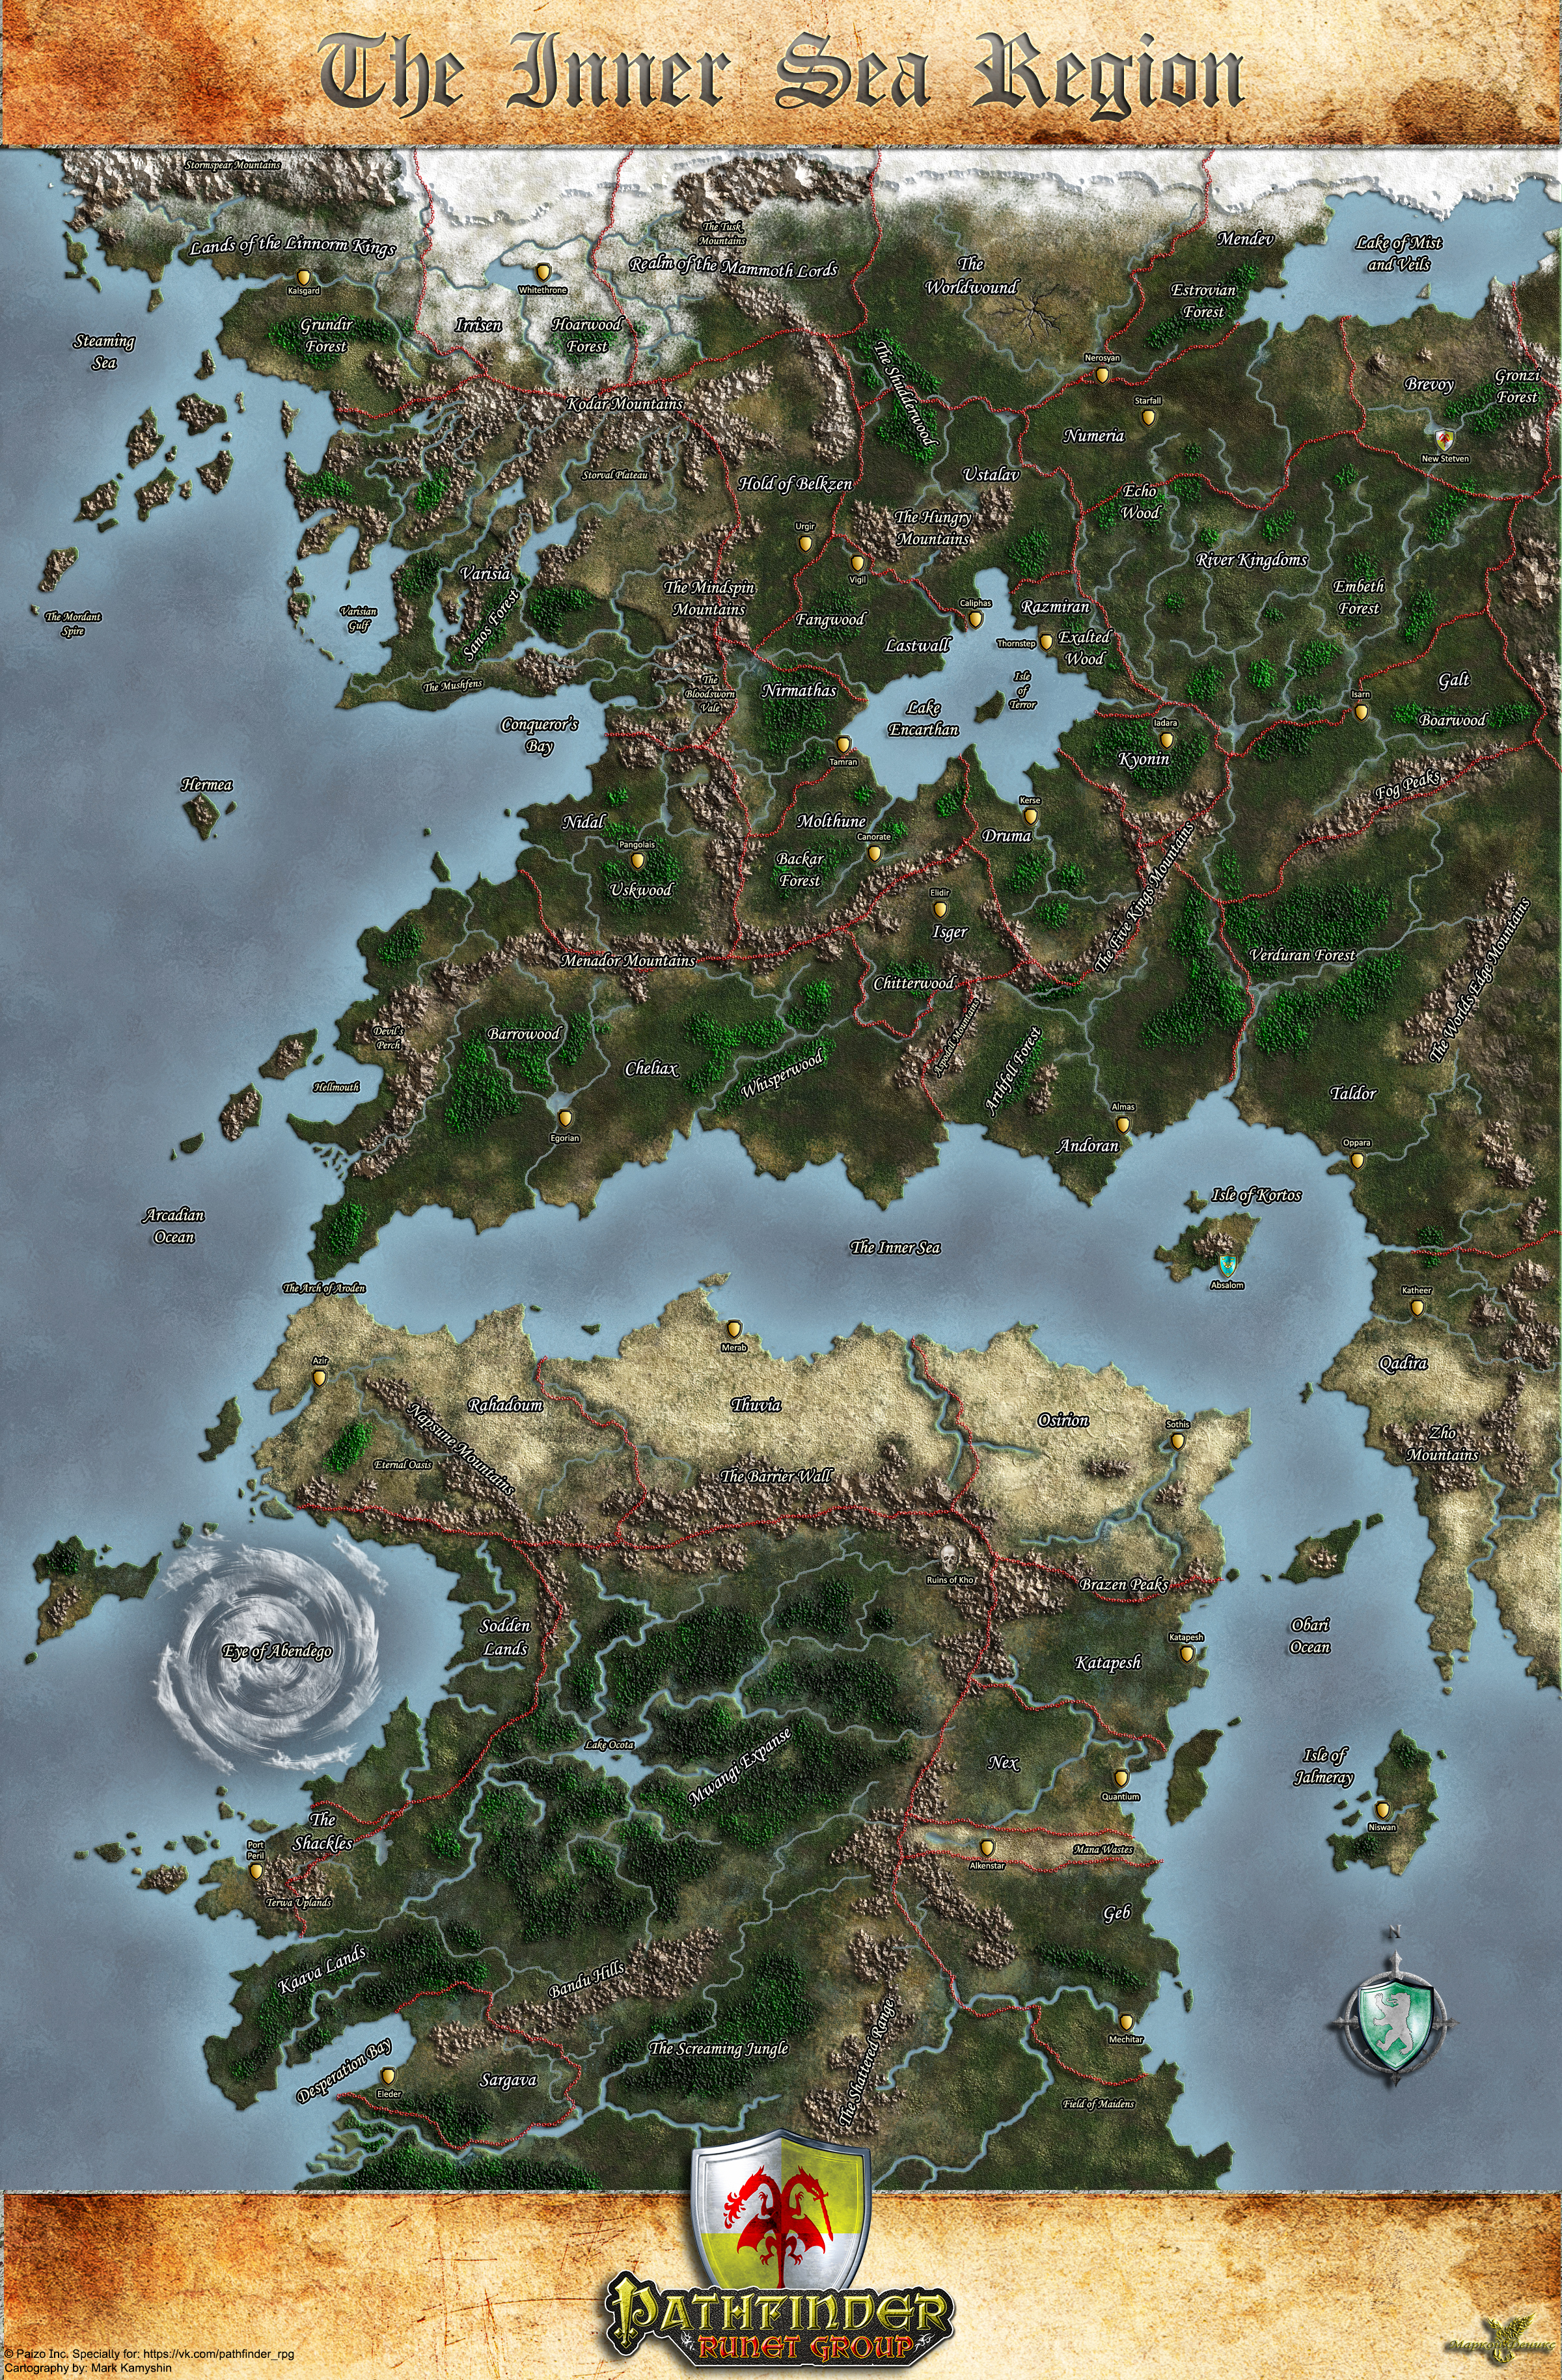 The Inner Sea Region Map by MarkonPhoenix on DeviantArt on inner ear piercing, inner elbow anatomy, inner love, inner eye anatomy, inner transition metals, inner london boroughs, inner ear surgery, thistletop dungeon map, outer mongolia map, inner leg muscles, u.s. obesity map, rustic world map, inner mouth anatomy, inner foot anatomy, inner tie rod end, ustalav map, inner lip piercing, stone falls eso treasure map, inner conch piercing, inner leg exercises,